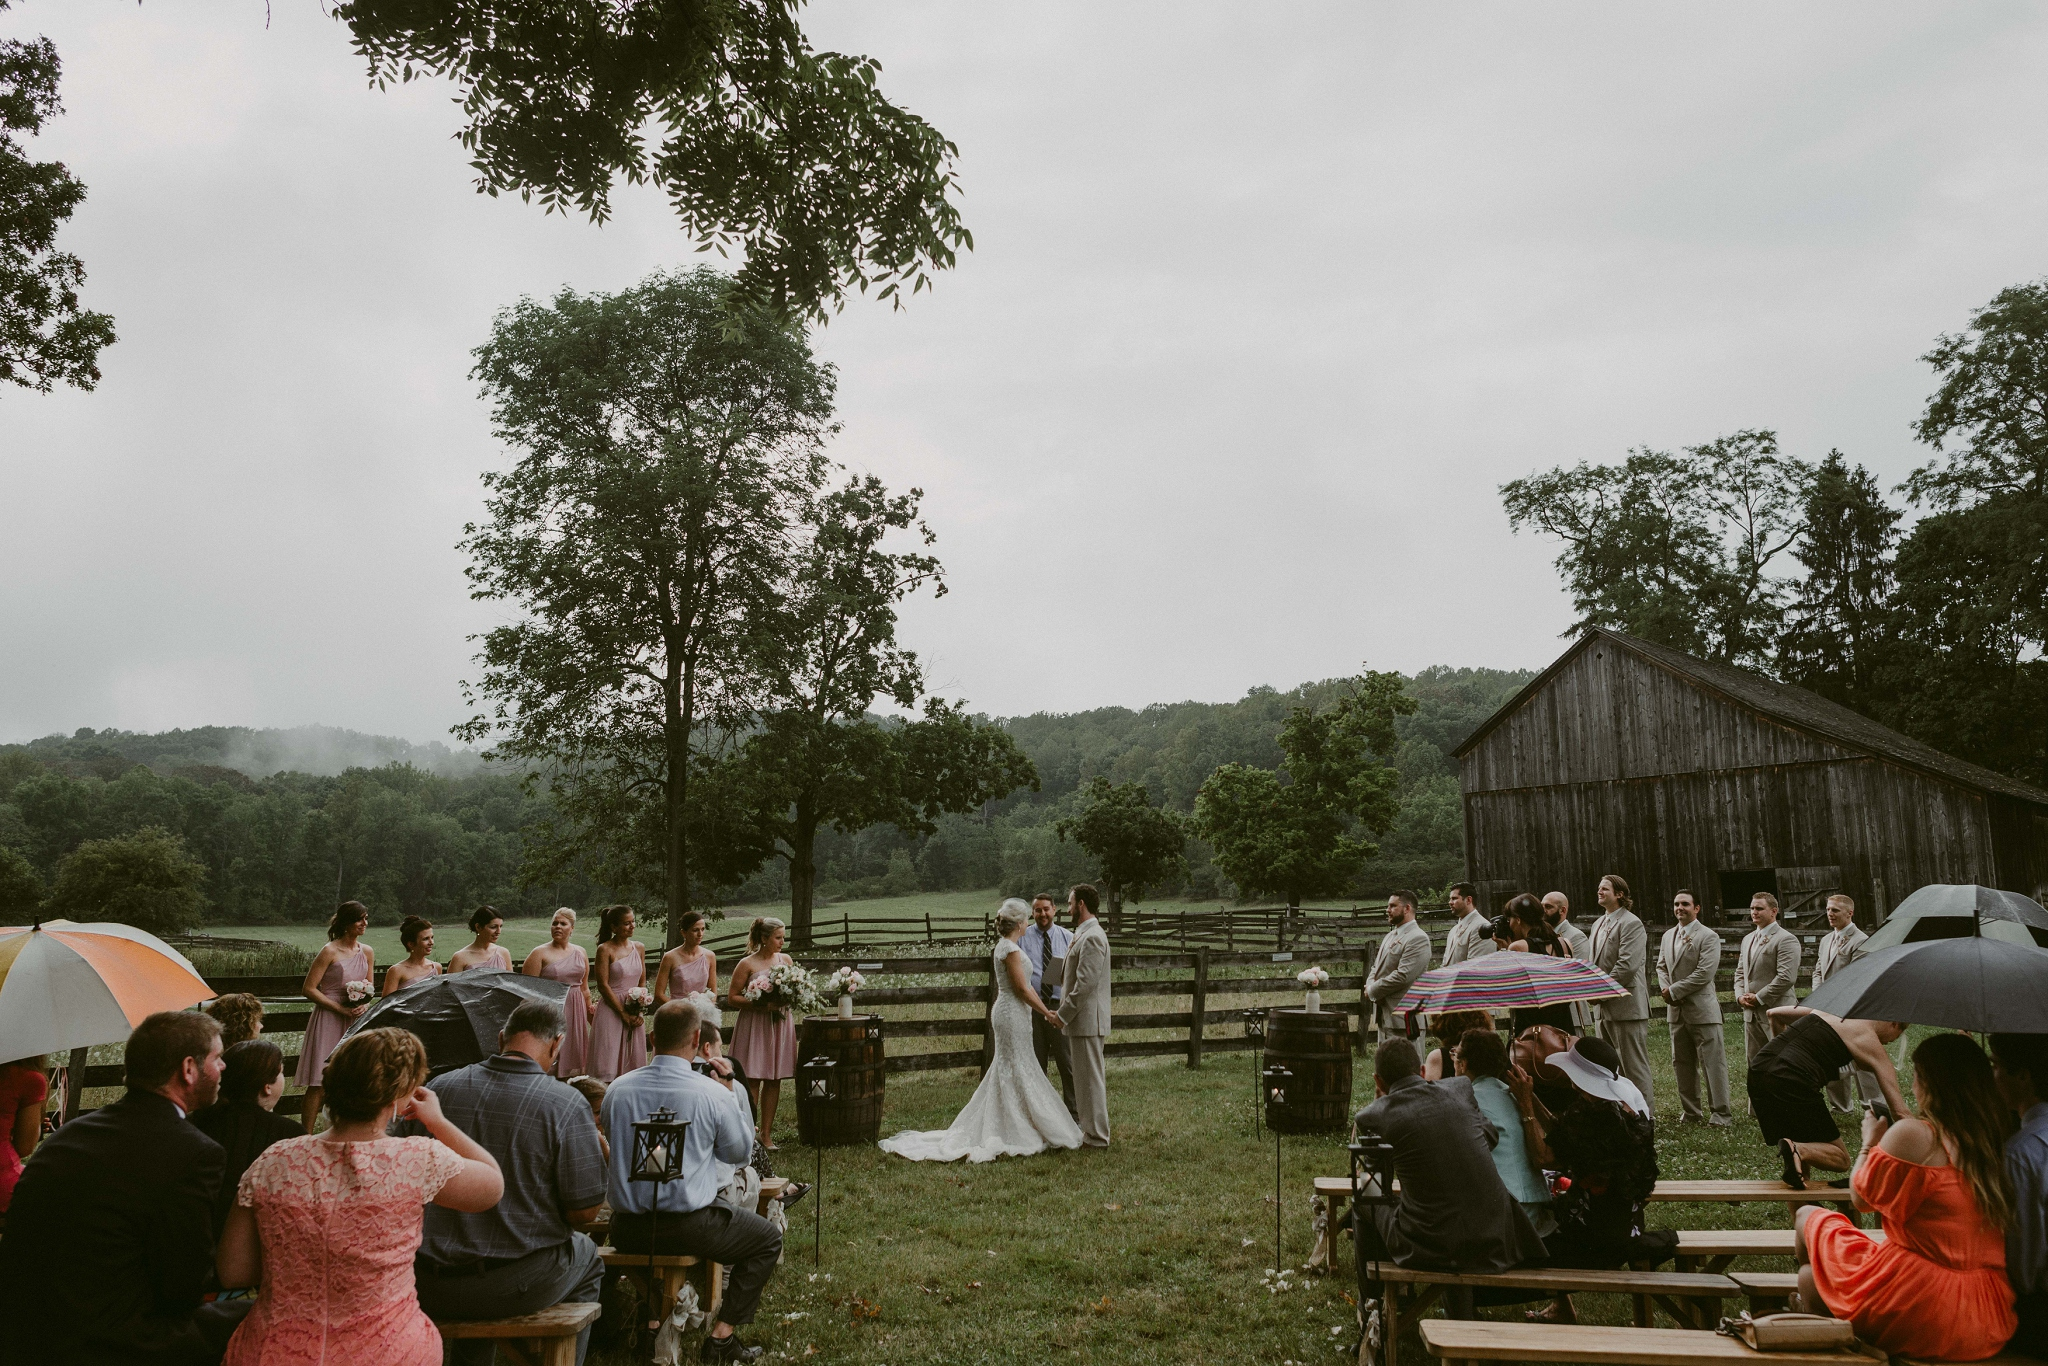 Hines-Hill-Farm-Cuyahoga-Valley-National-Park-Wedding_Emi+Andy_MJPHOTO-480.jpg